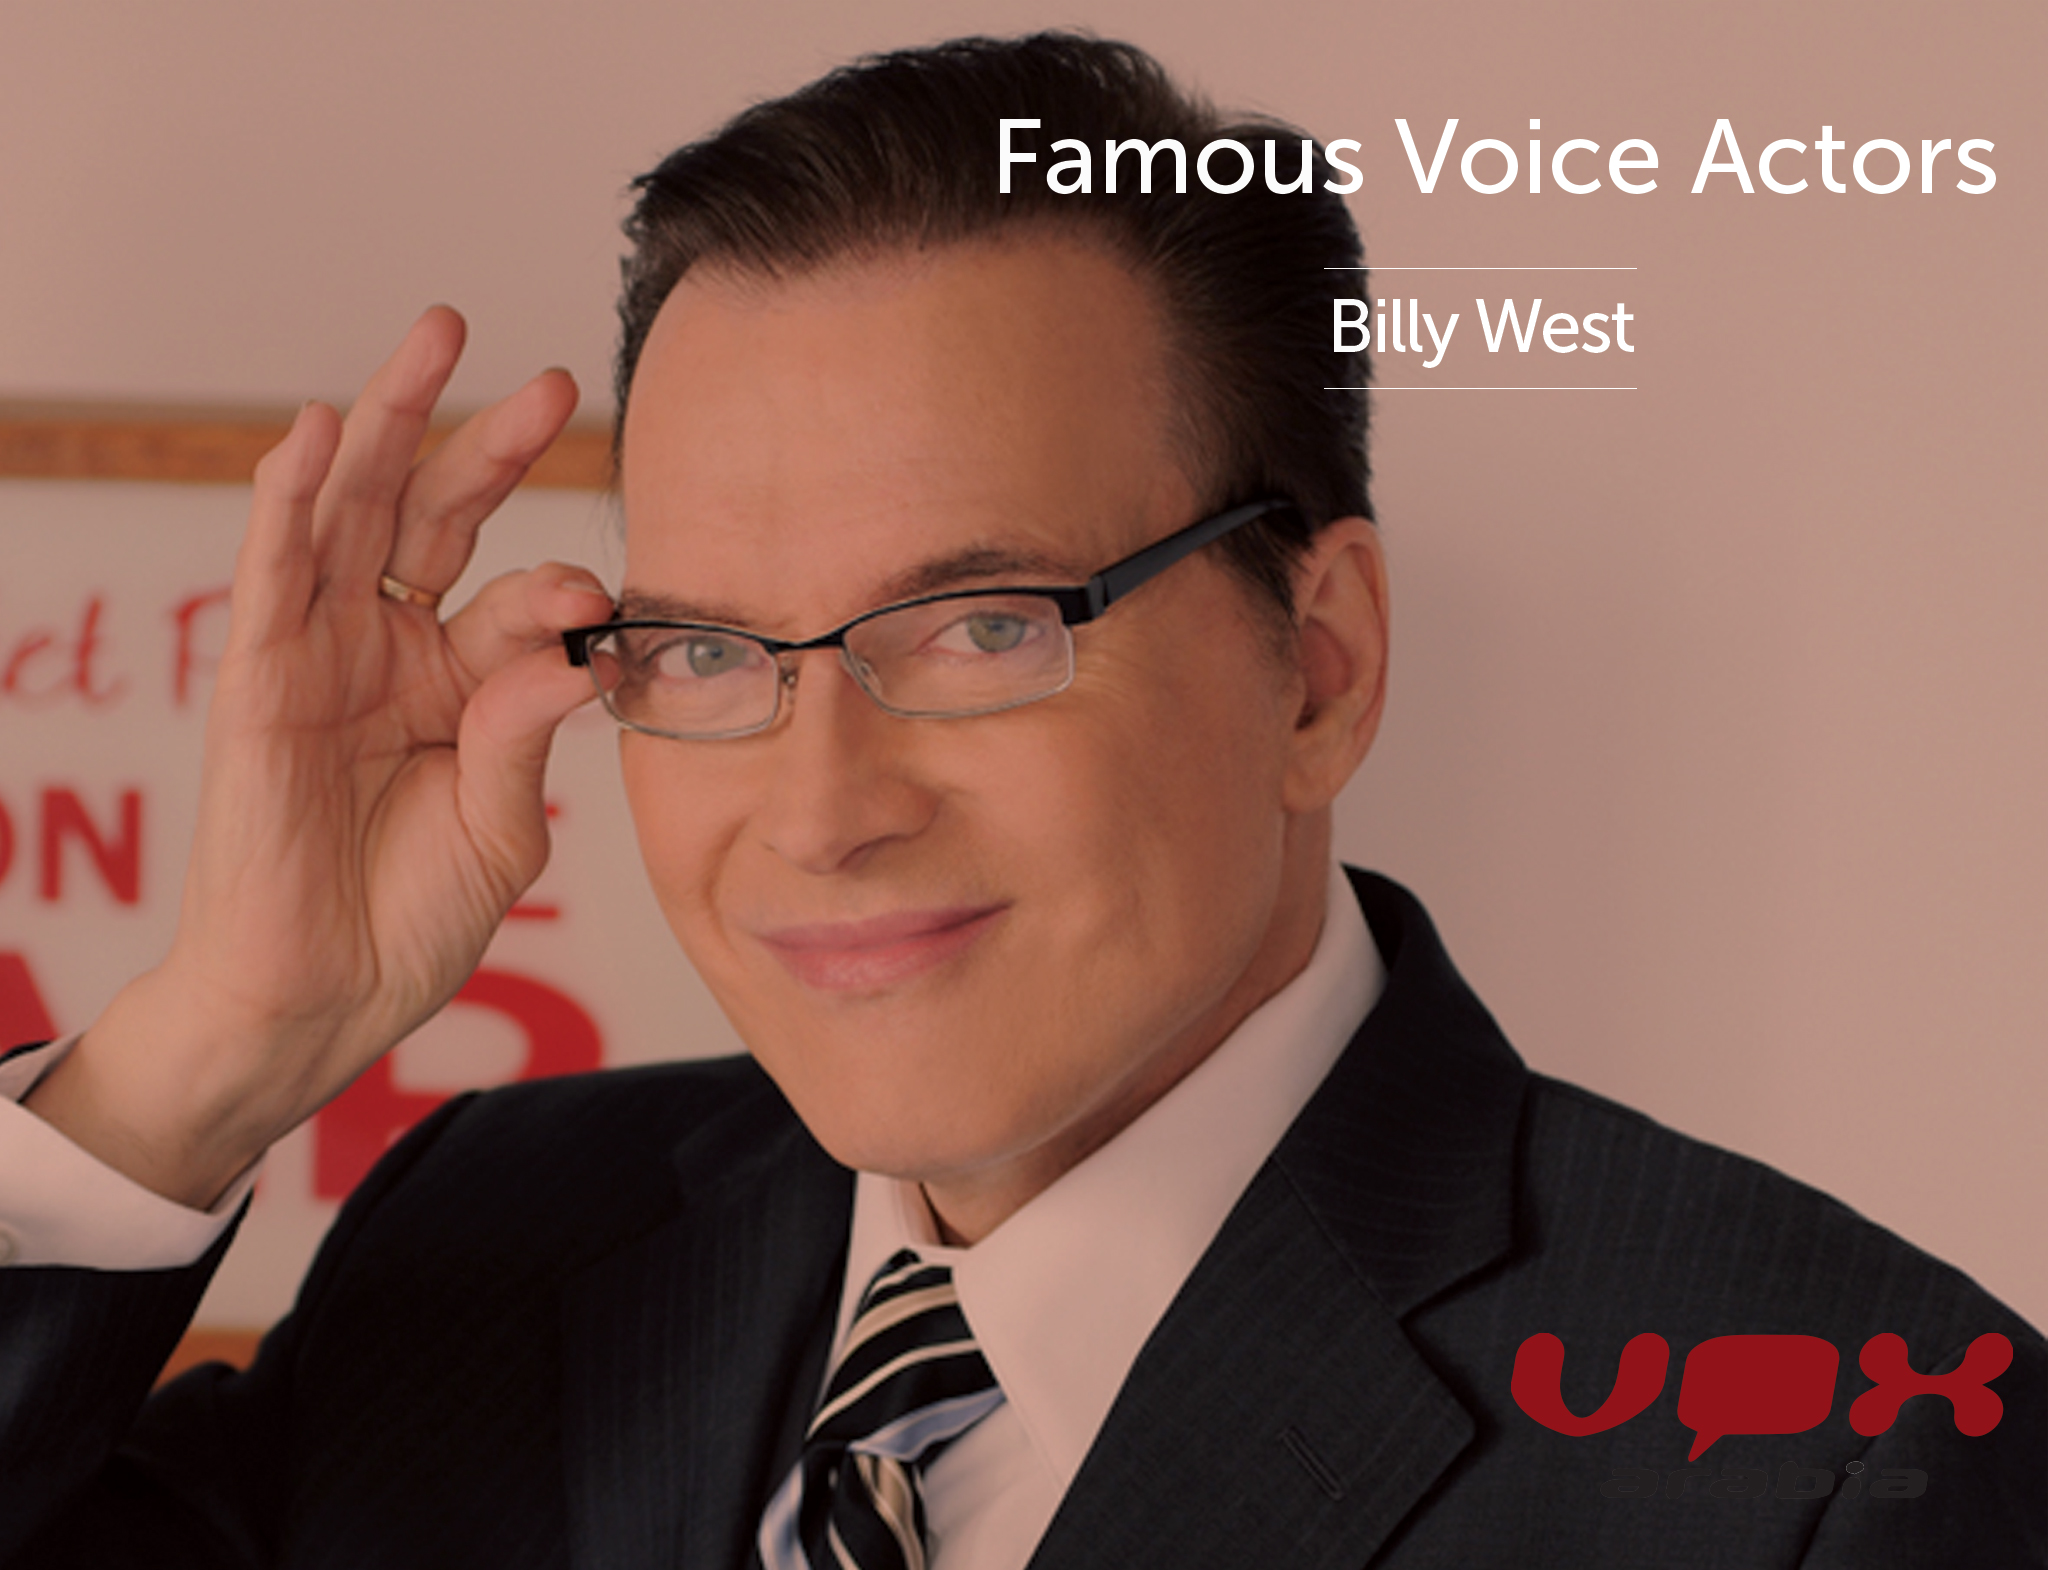 Famous Voice Actor | Billy West | Vox Arabia